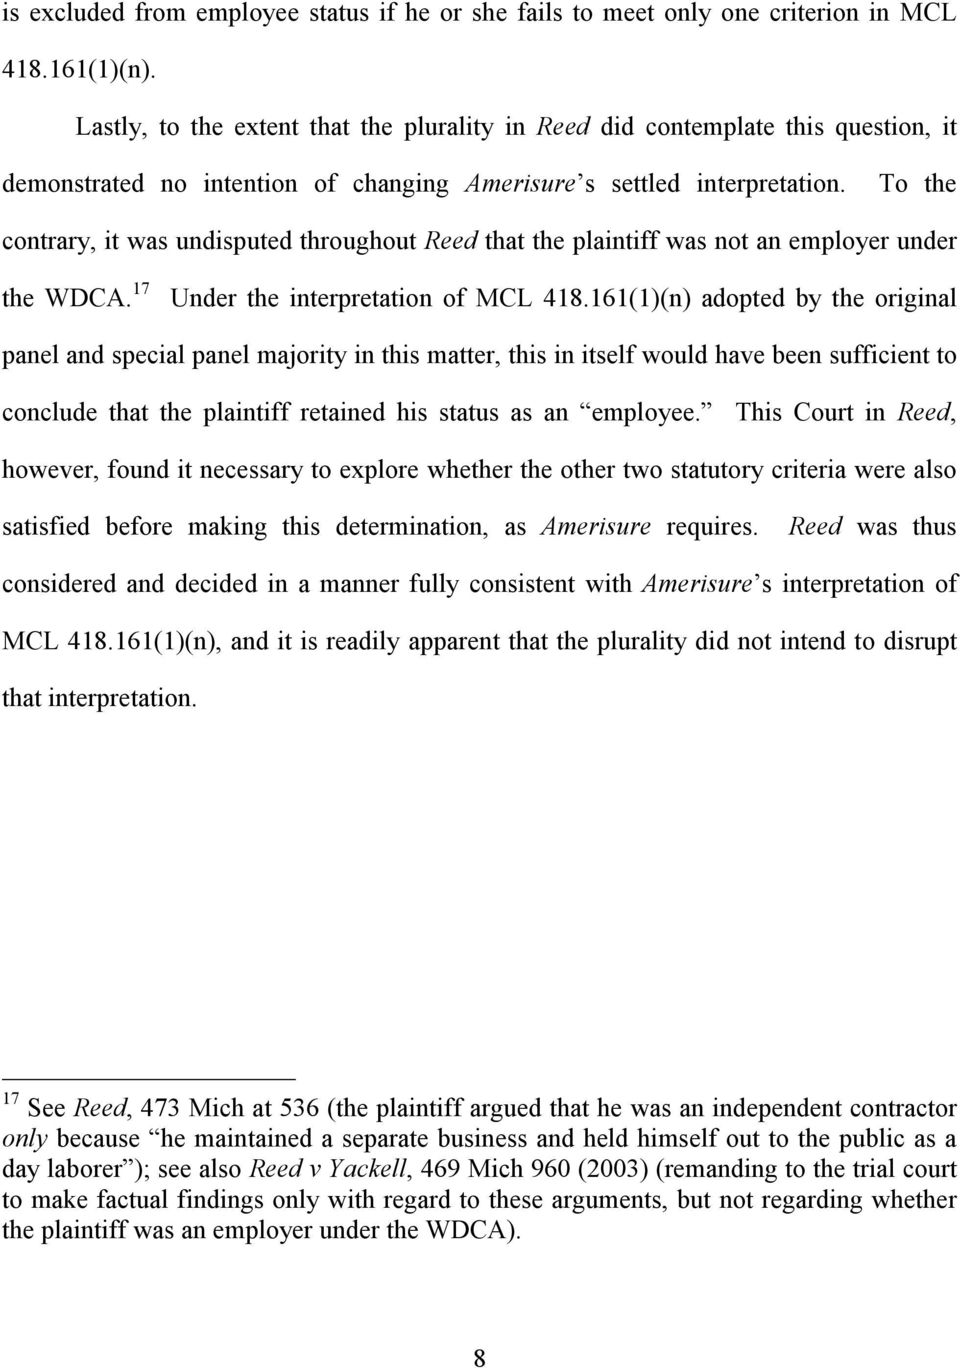 To the contrary, it was undisputed throughout Reed that the plaintiff was not an employer under the WDCA. 17 Under the interpretation of MCL 418.